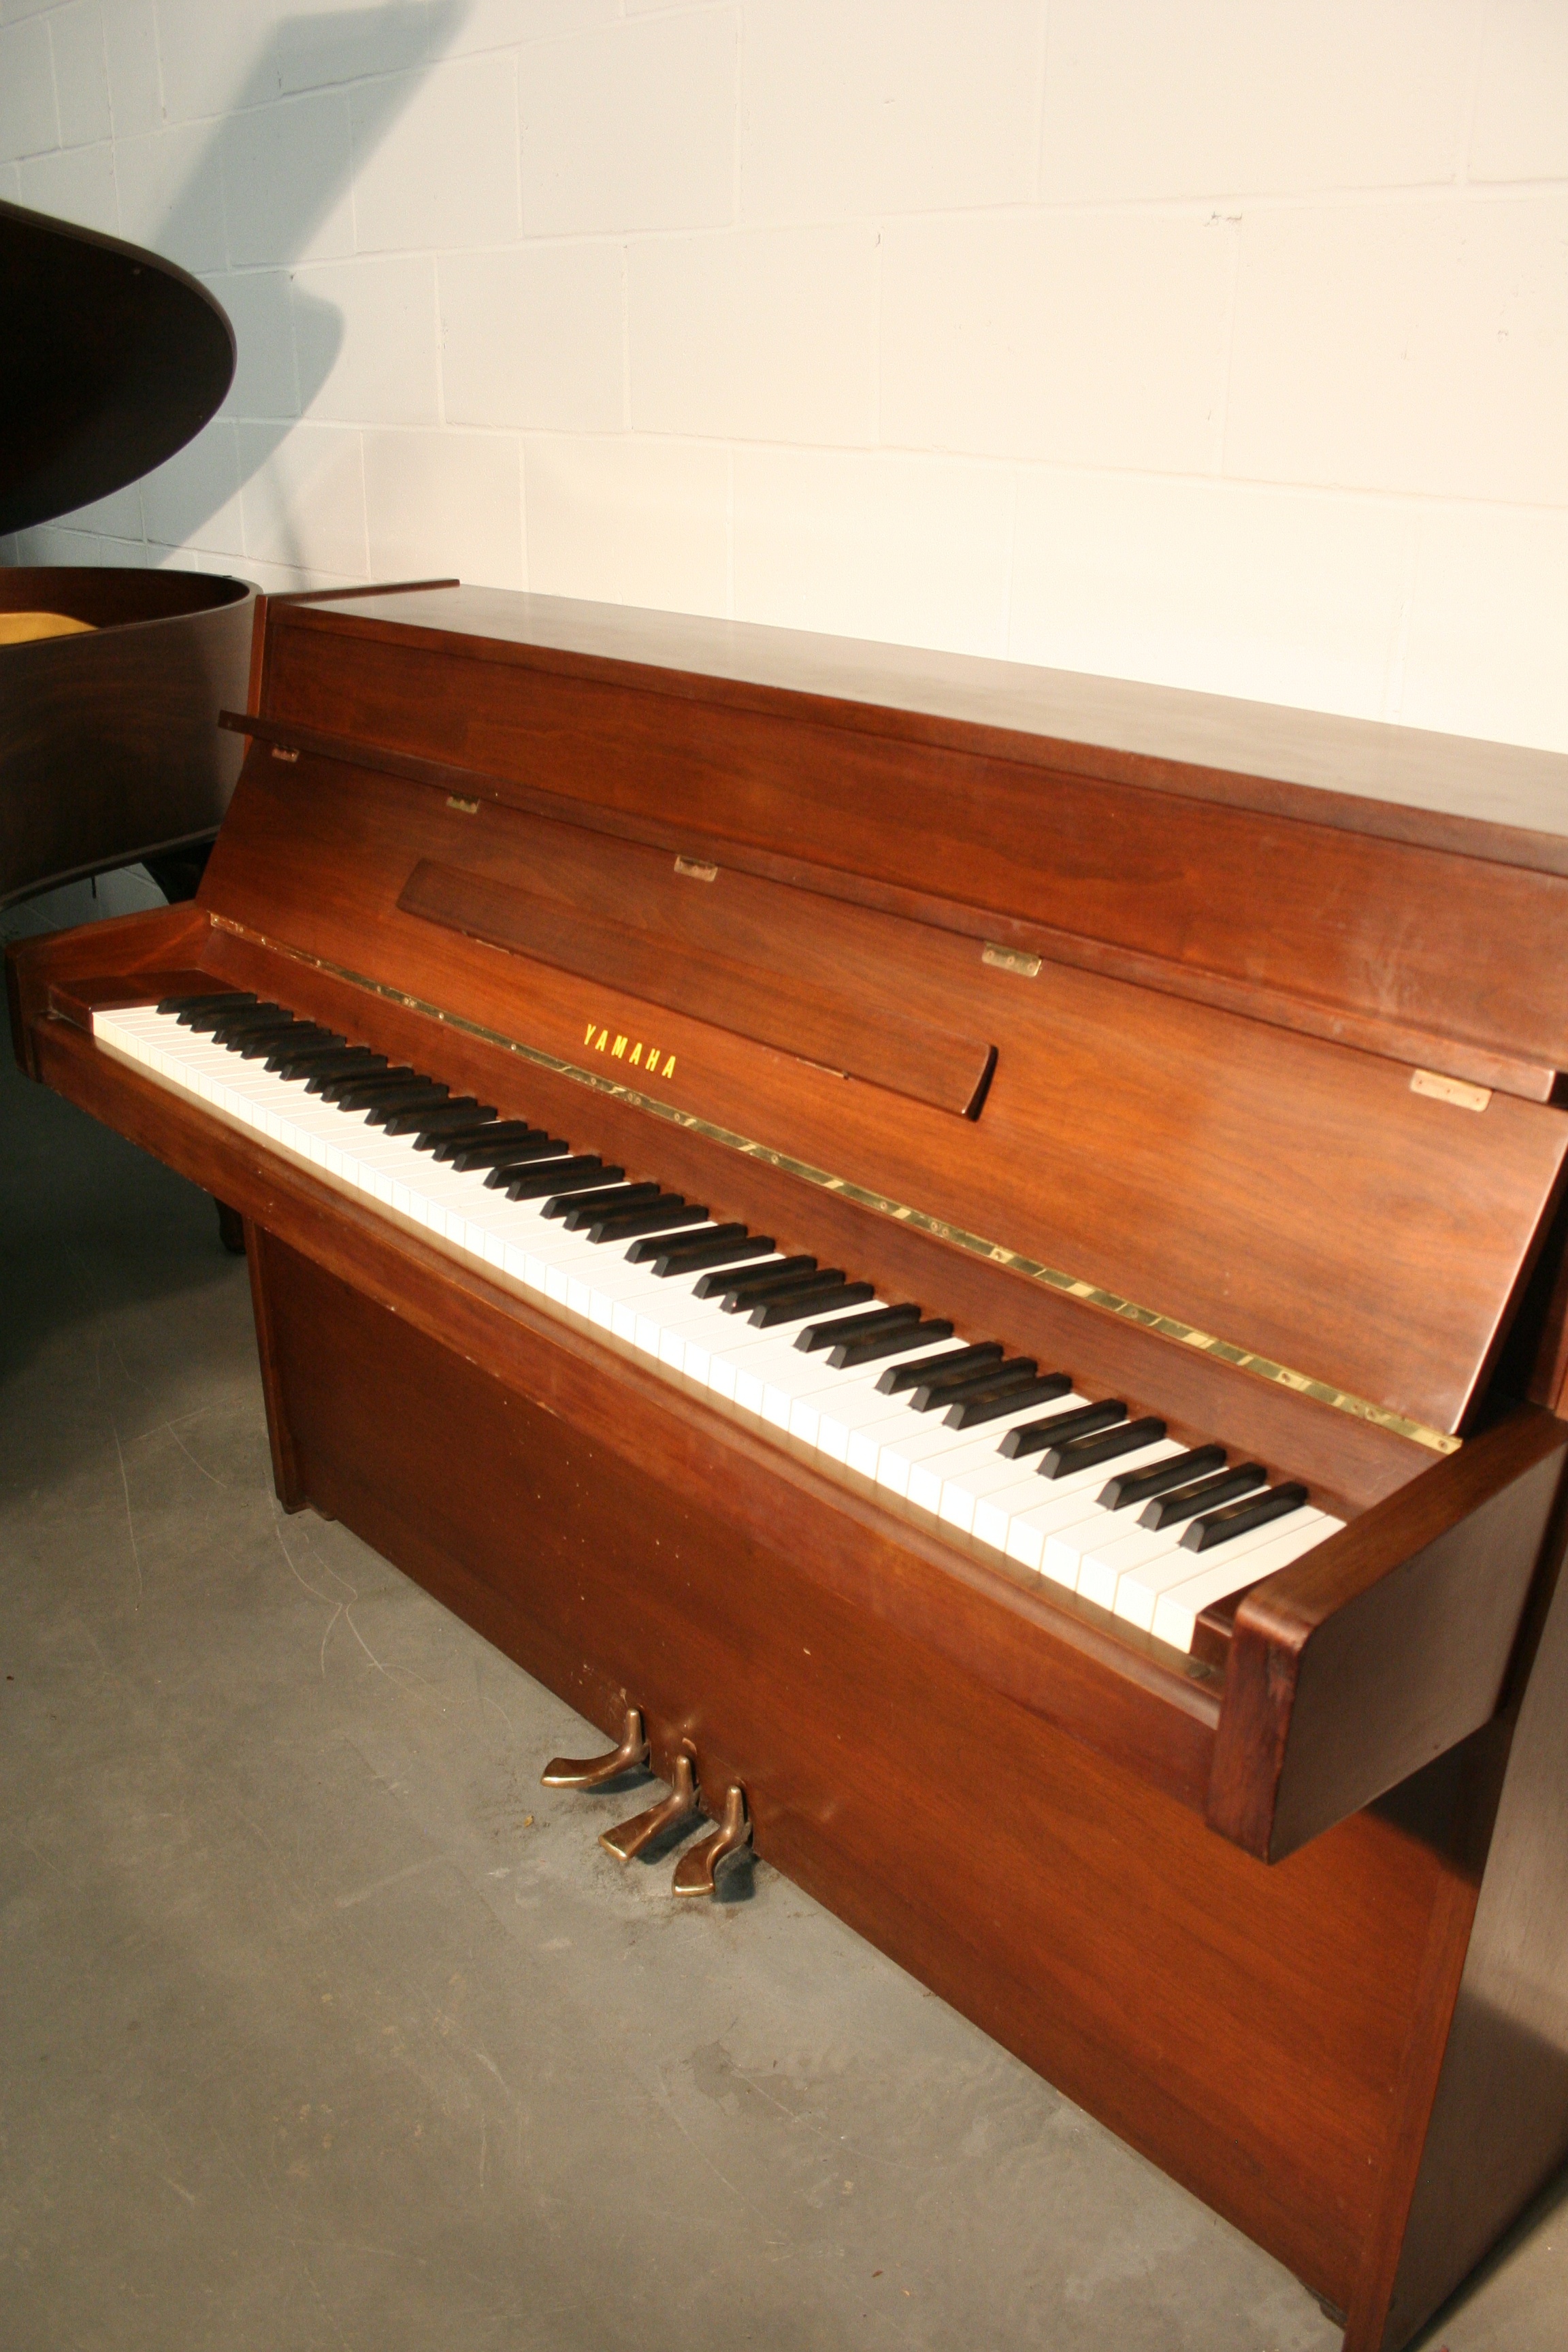 Sonnys piano tv piano gallery used steinways for sale sold yamaha console piano walnut - Yamaha console piano models ...